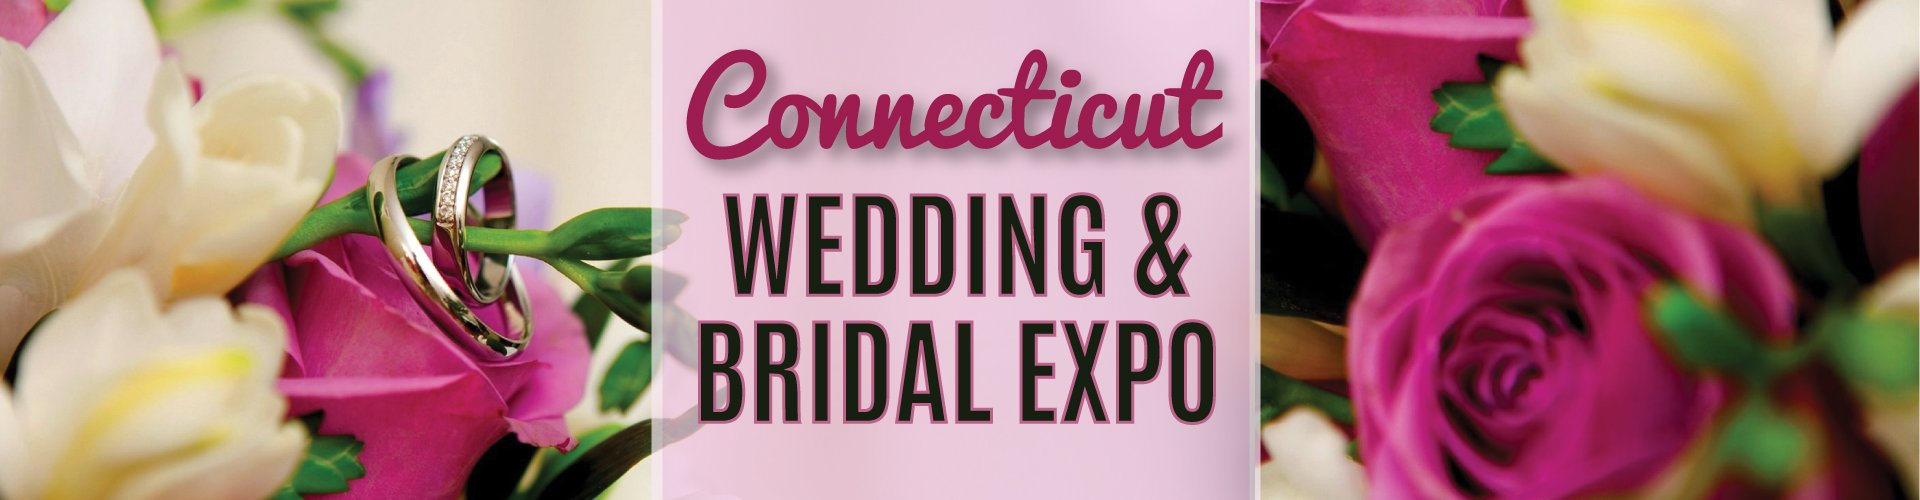 34th Annual 2019 Connecticut Wedding Bridal Expo Jenks Productions